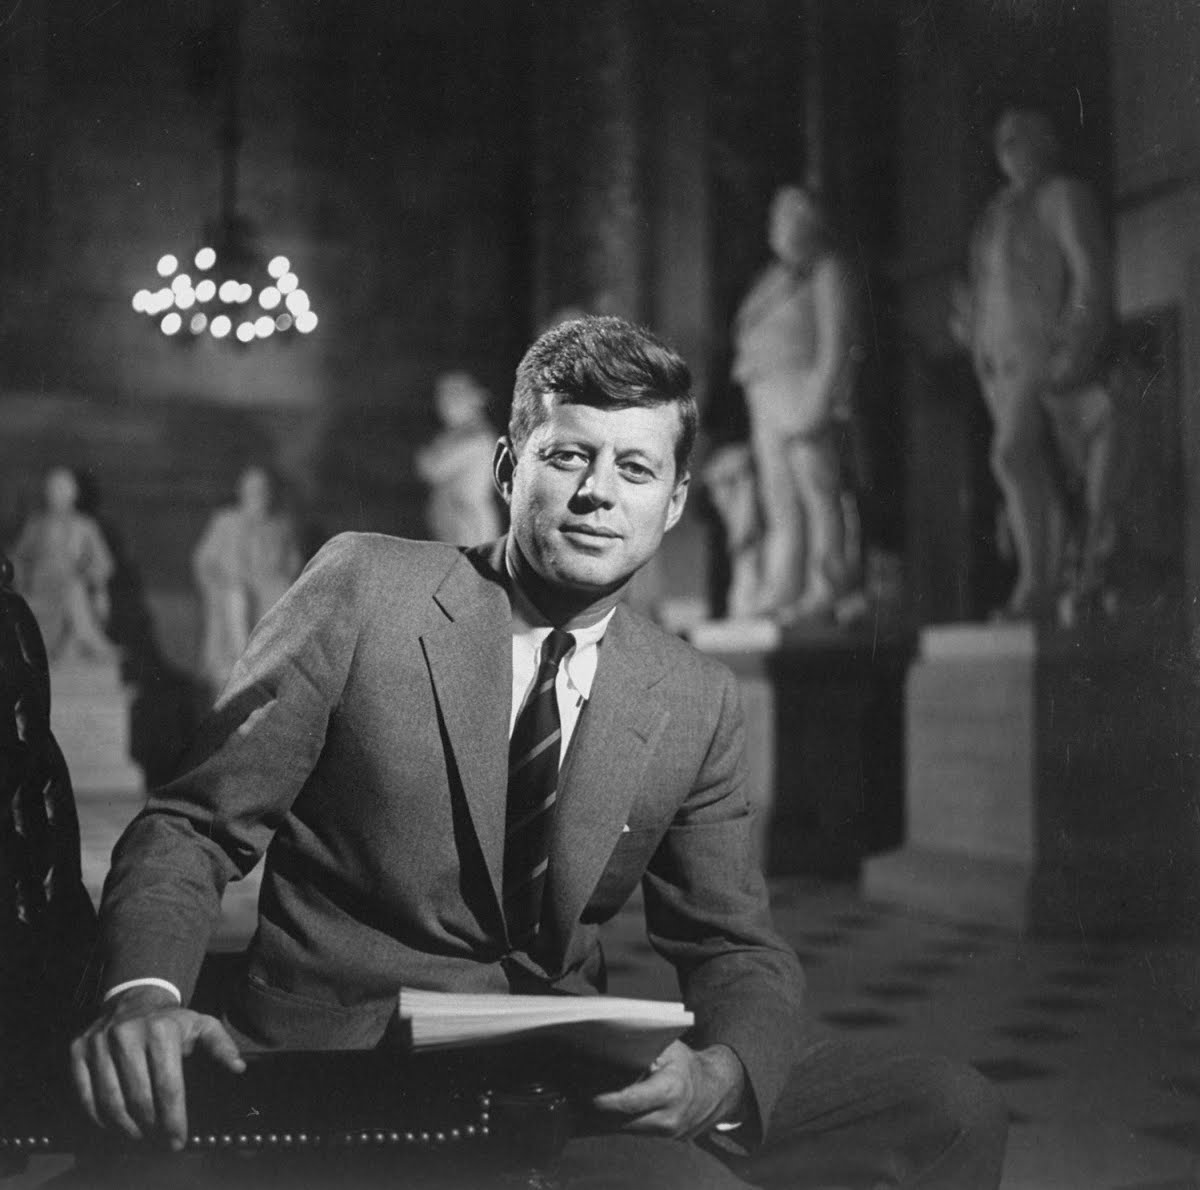 an introduction to the life of john f kennedy and john fitzgerald John fitzgerald kennedy born 29 may 1917, brookline, massachusetts, us assassinated 22 early life the second of nine children, kennedy was reared in a family that demanded intense his mother, rose, was the daughter of john f (honey fitz) fitzgerald, onetime mayor of boston.